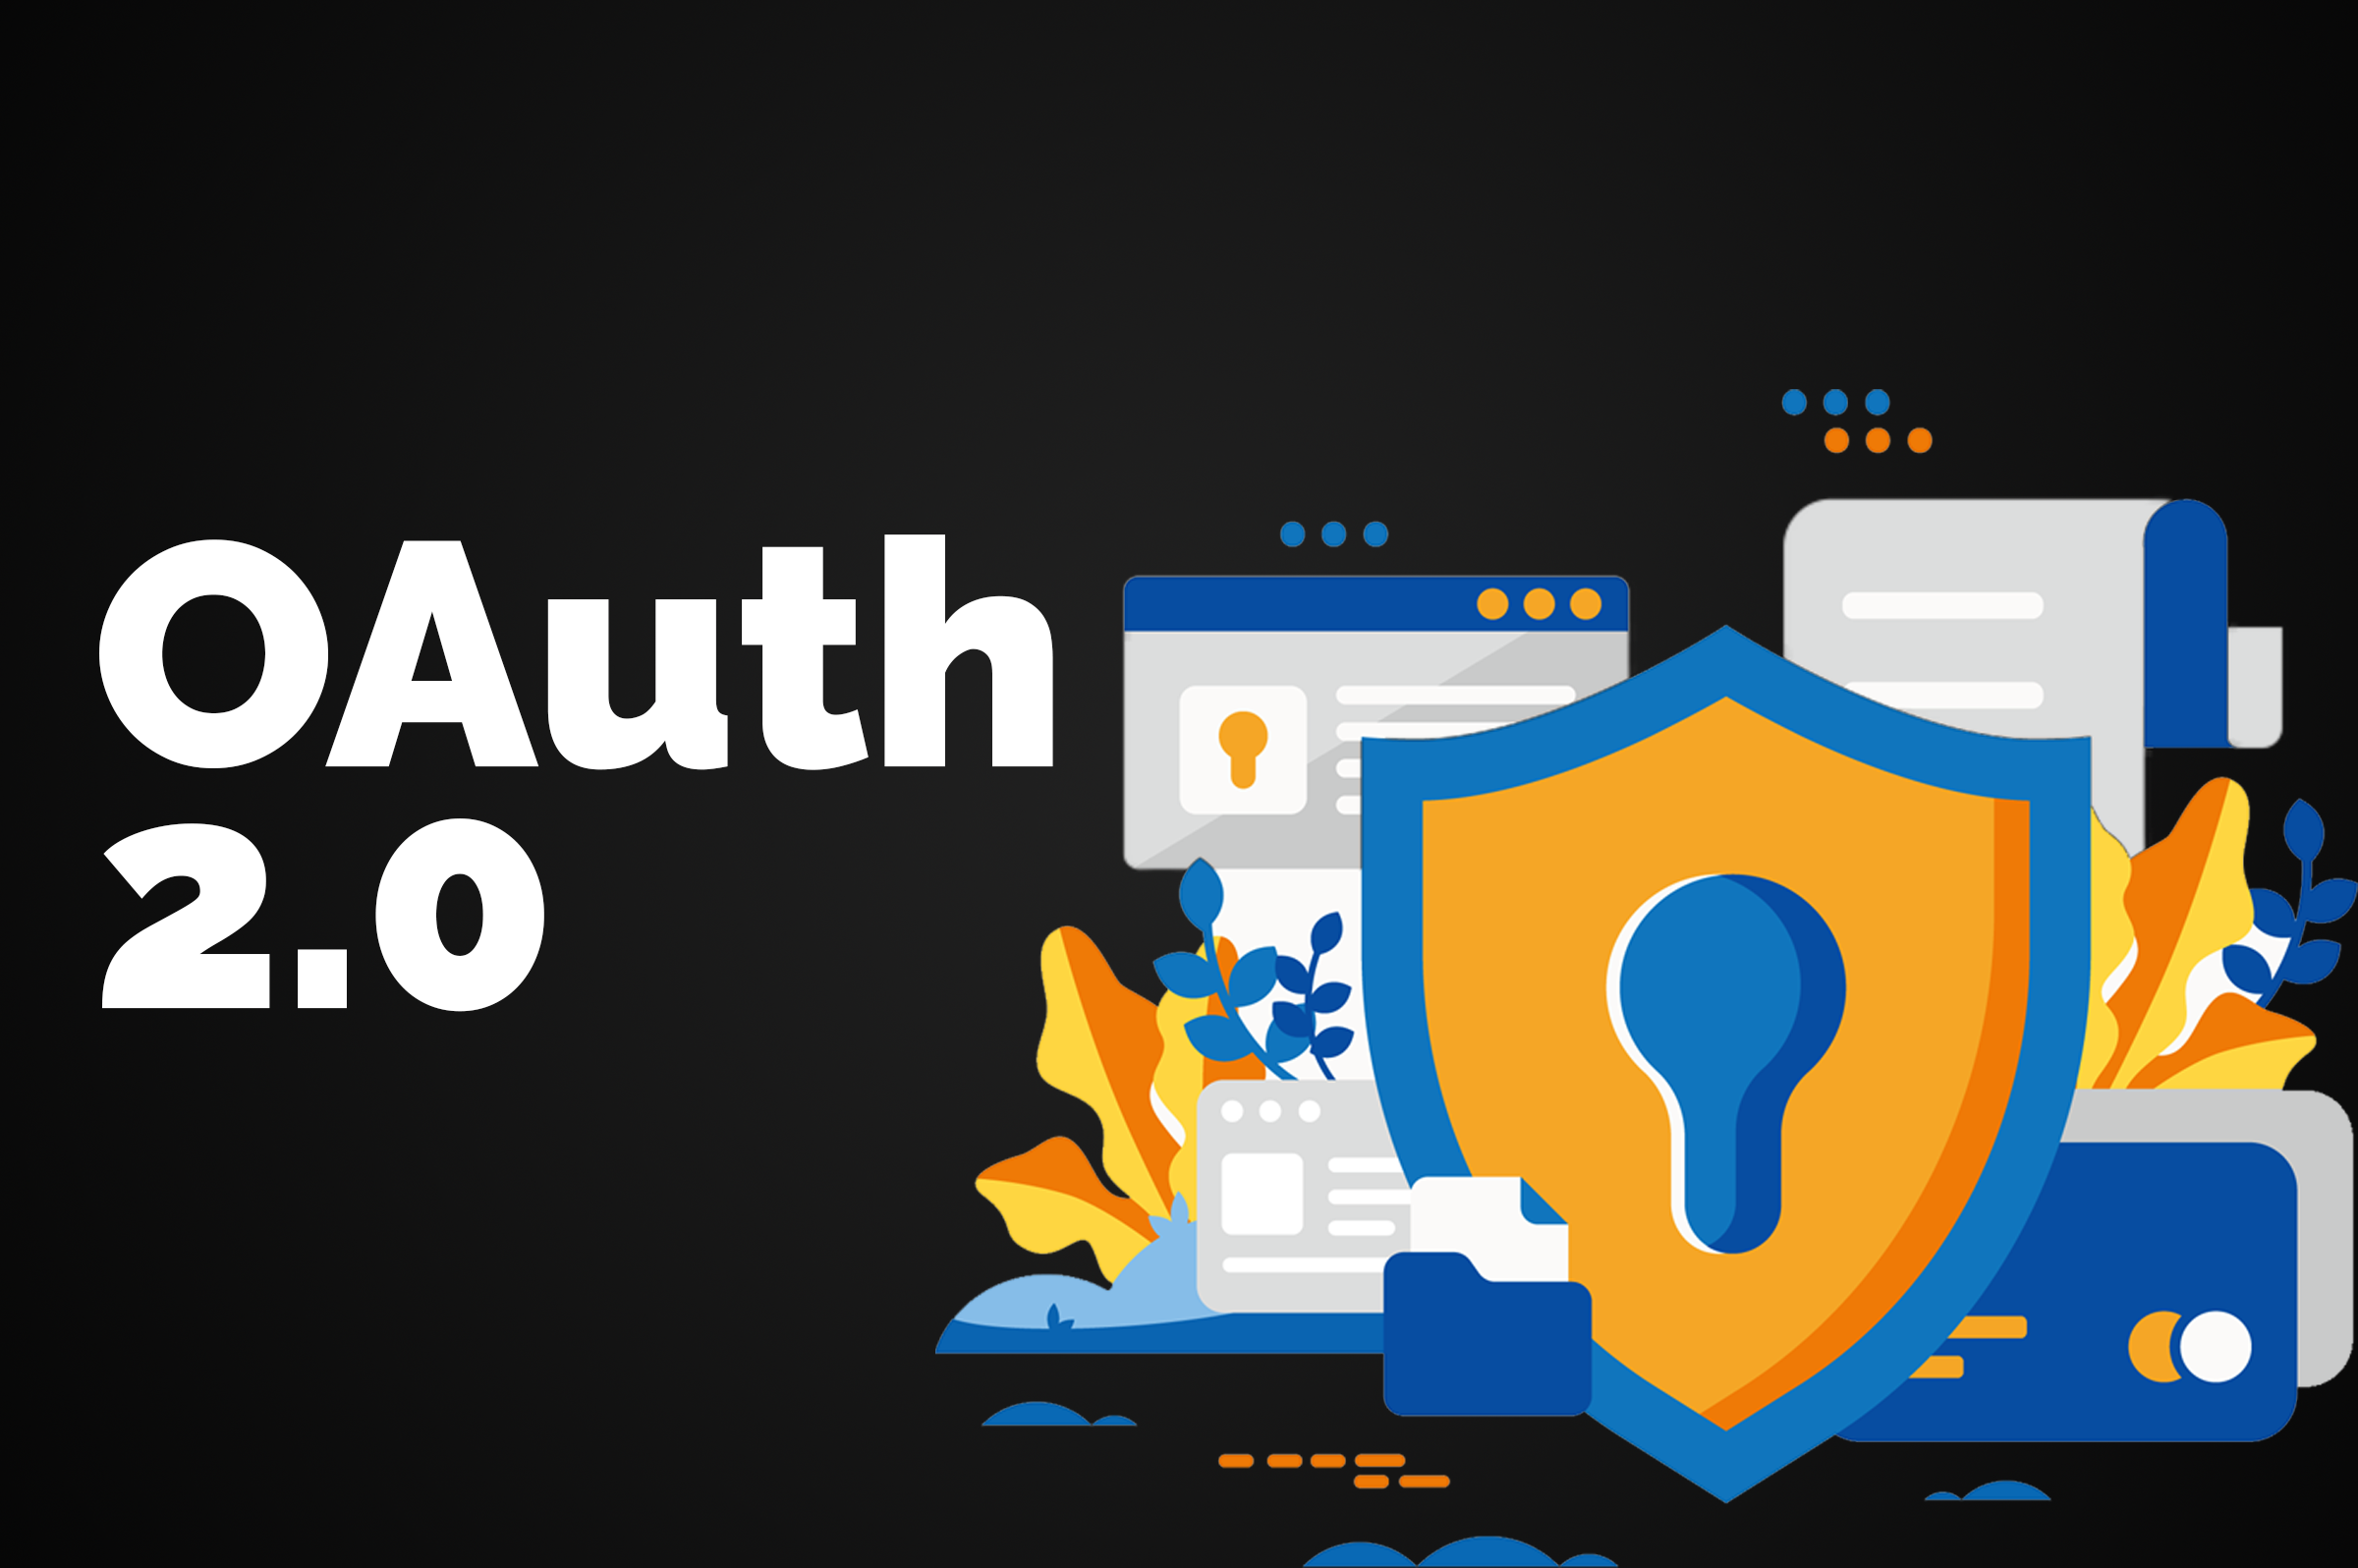 What is OAuth 2.0? How does it work?